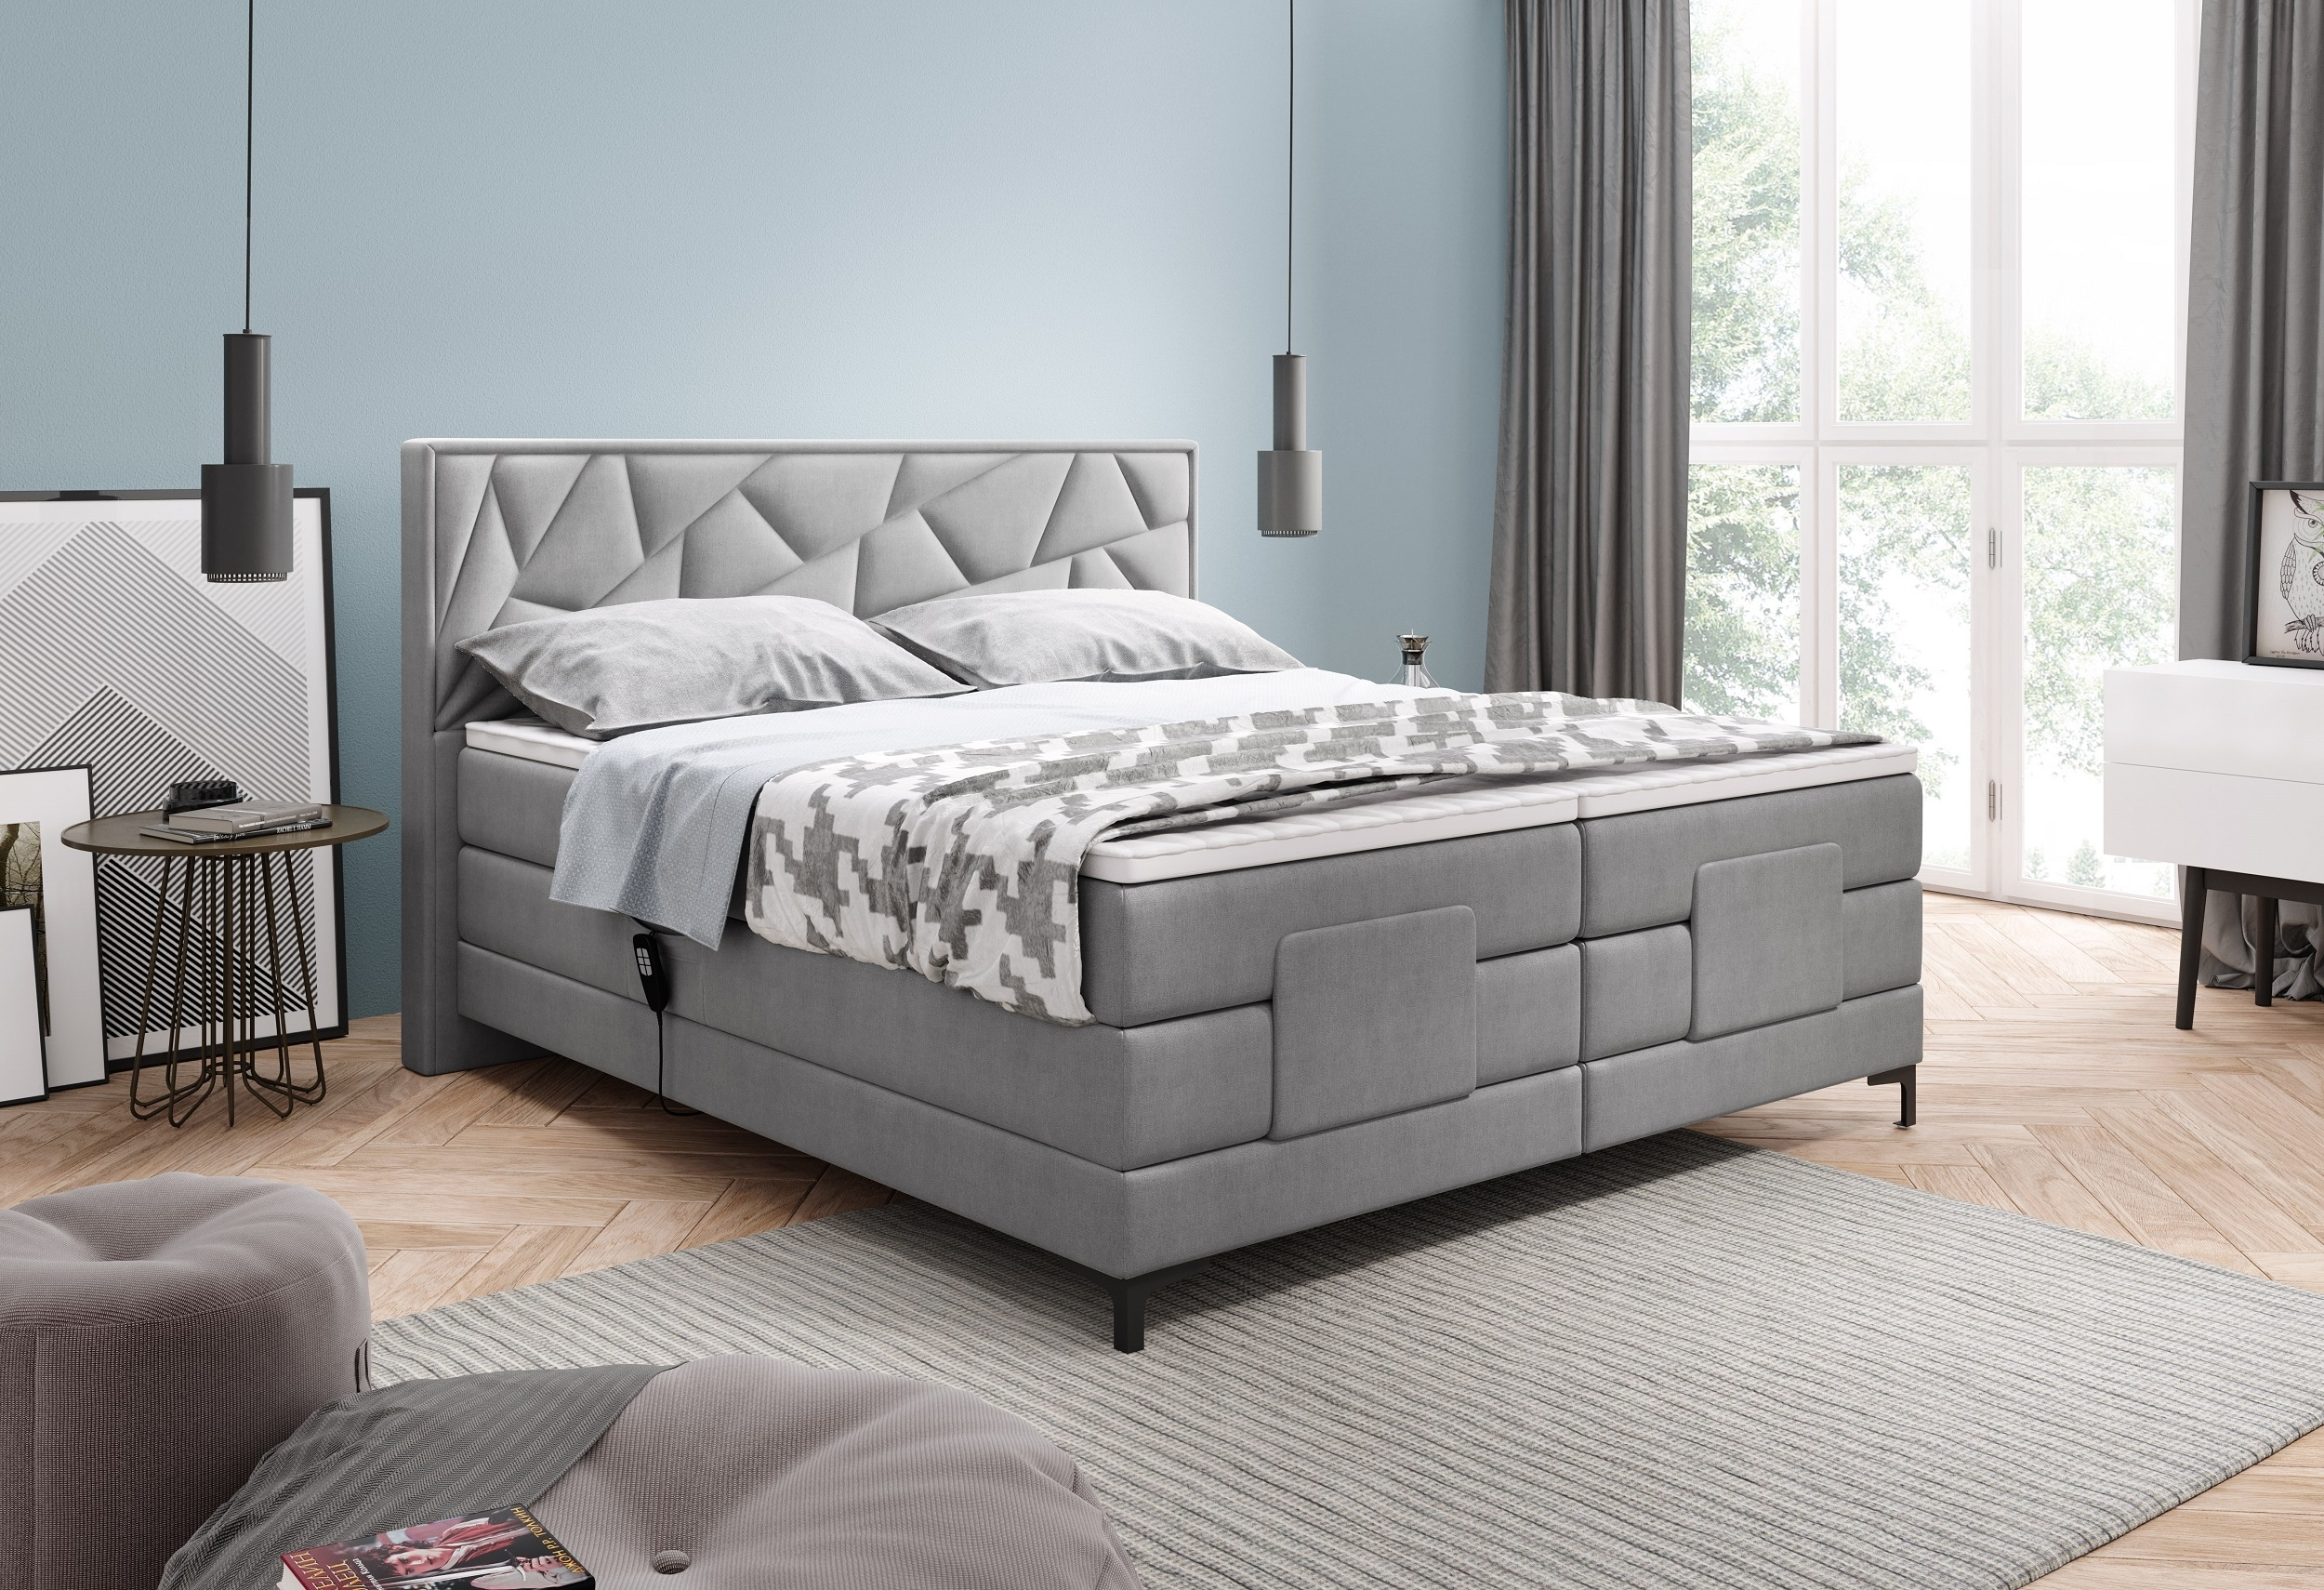 Pat tapitat cu stofa, cu reglaj electric Holme Boxspring Gri deschis, topper inclus, 200 x 160 cm